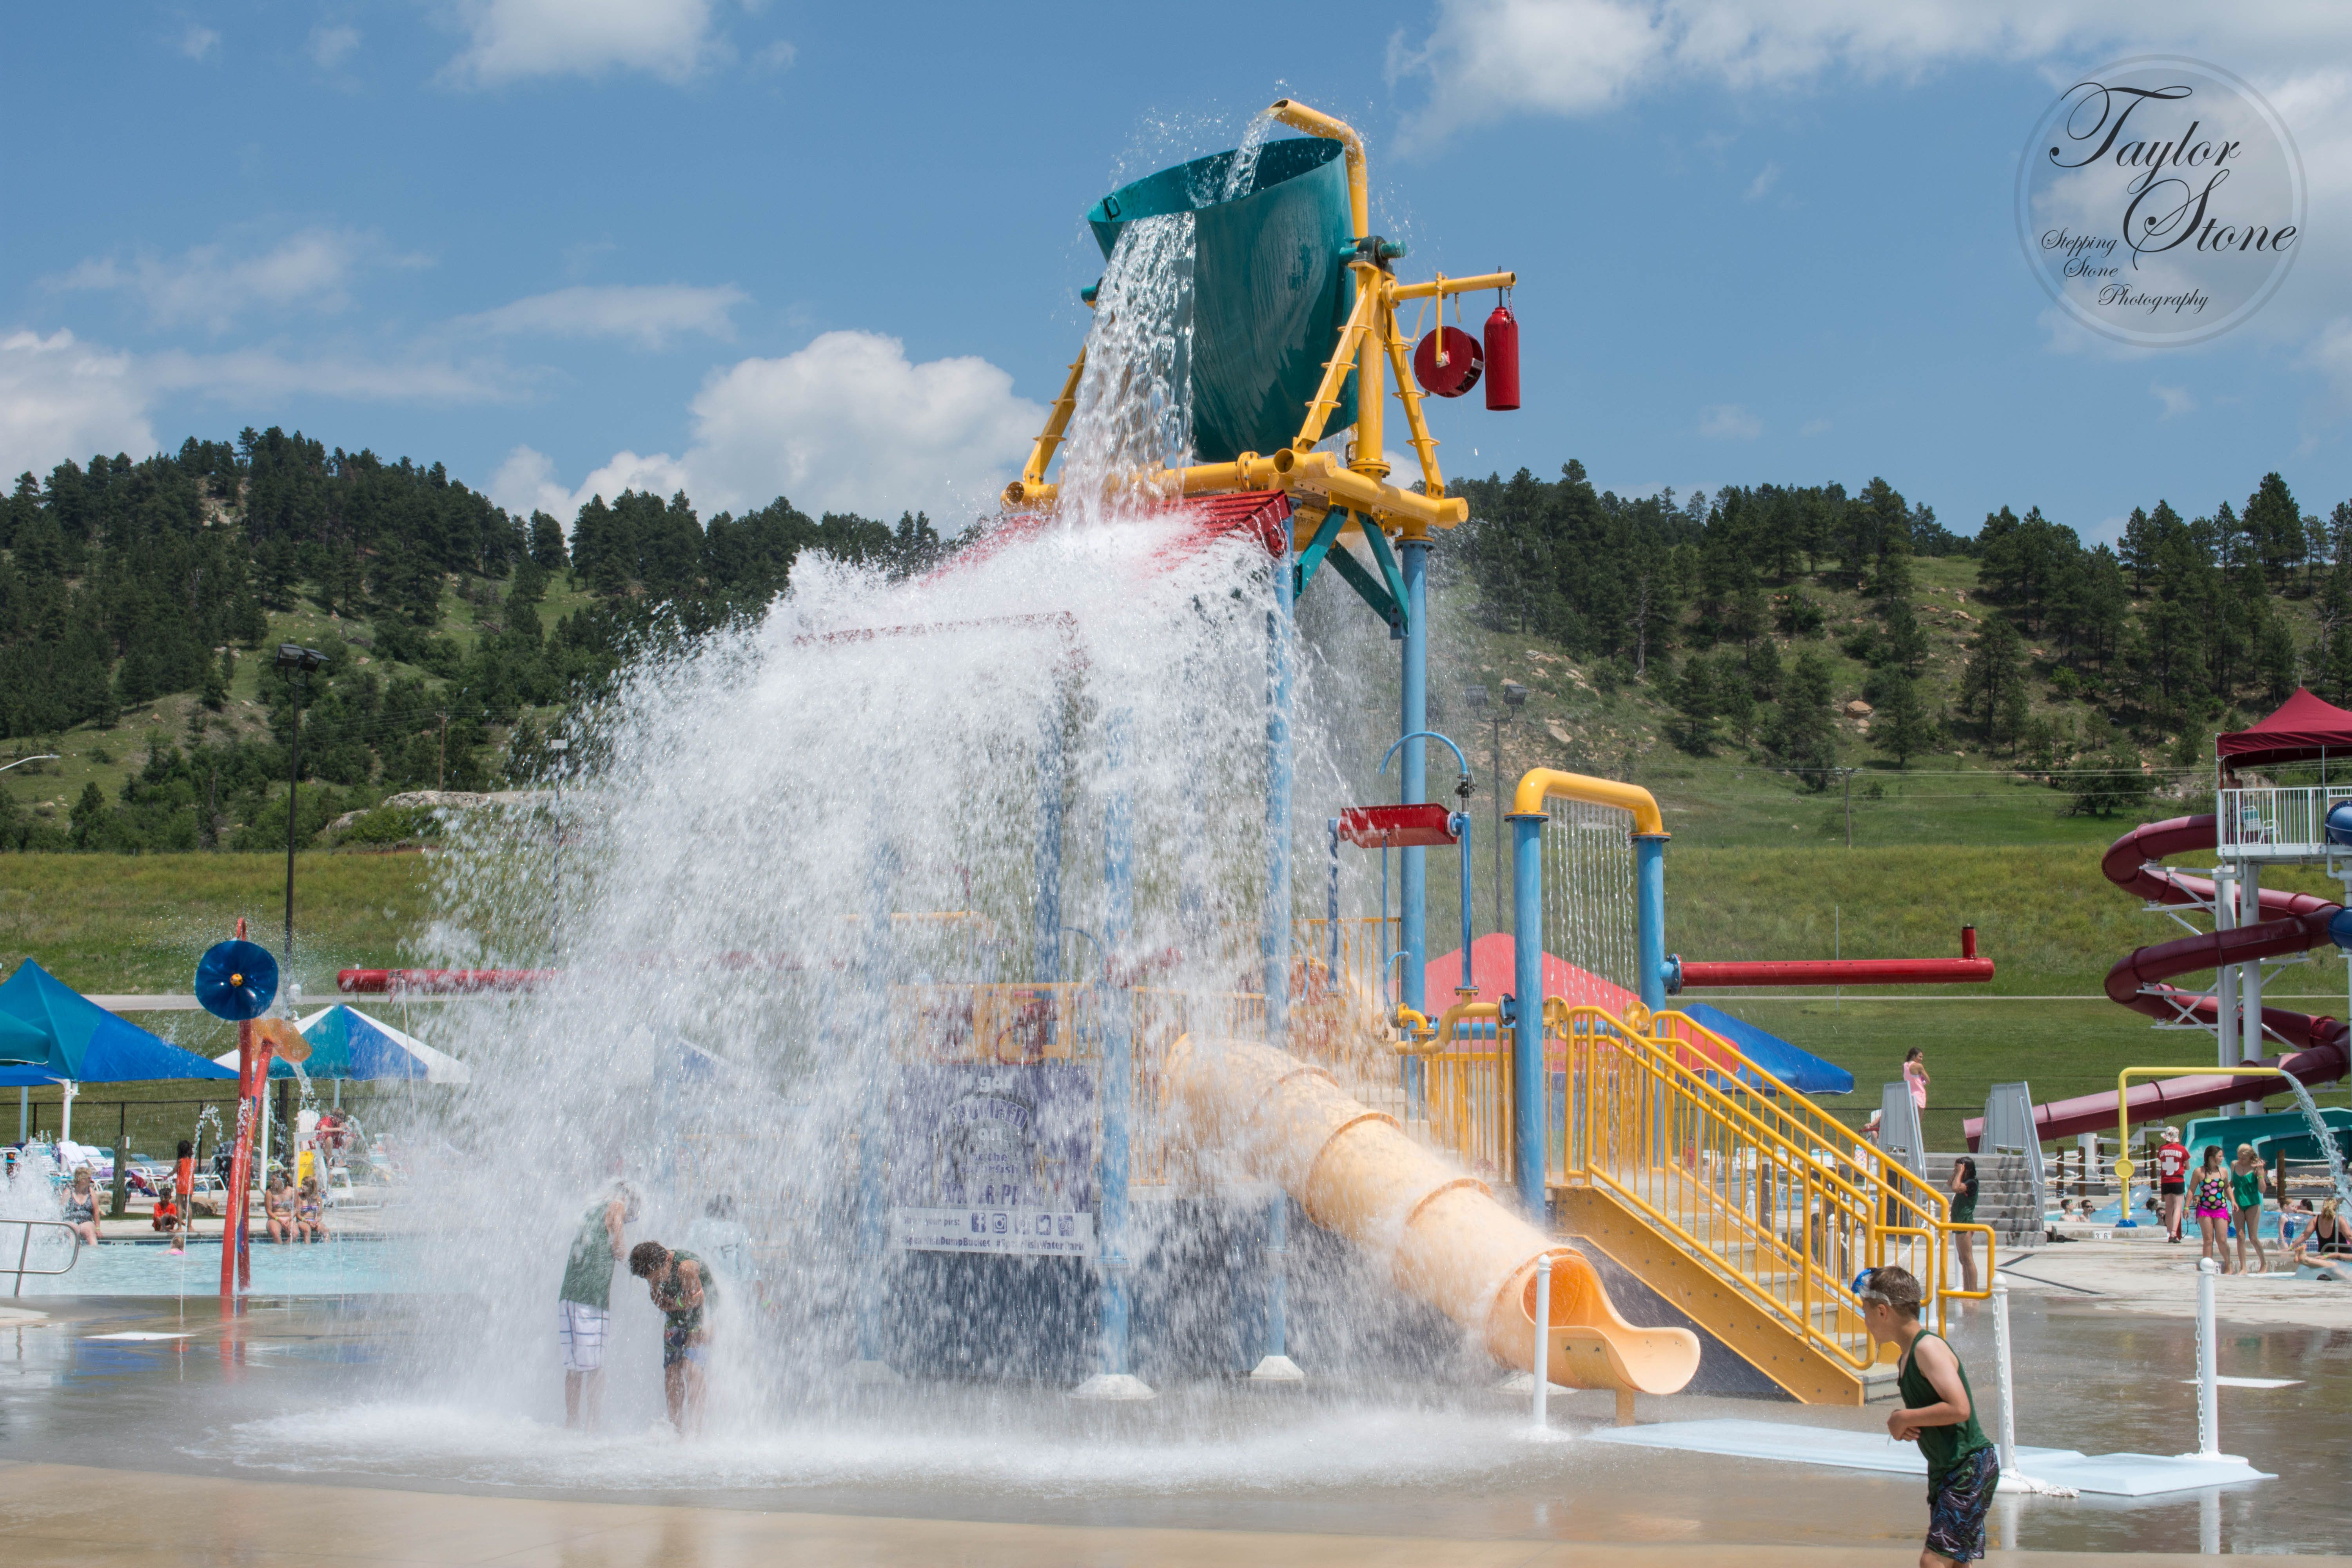 The 400 gallon dump bucket dumps out every few minutes spraying water across the area at the Spearfish Rec & Aquatic Center!